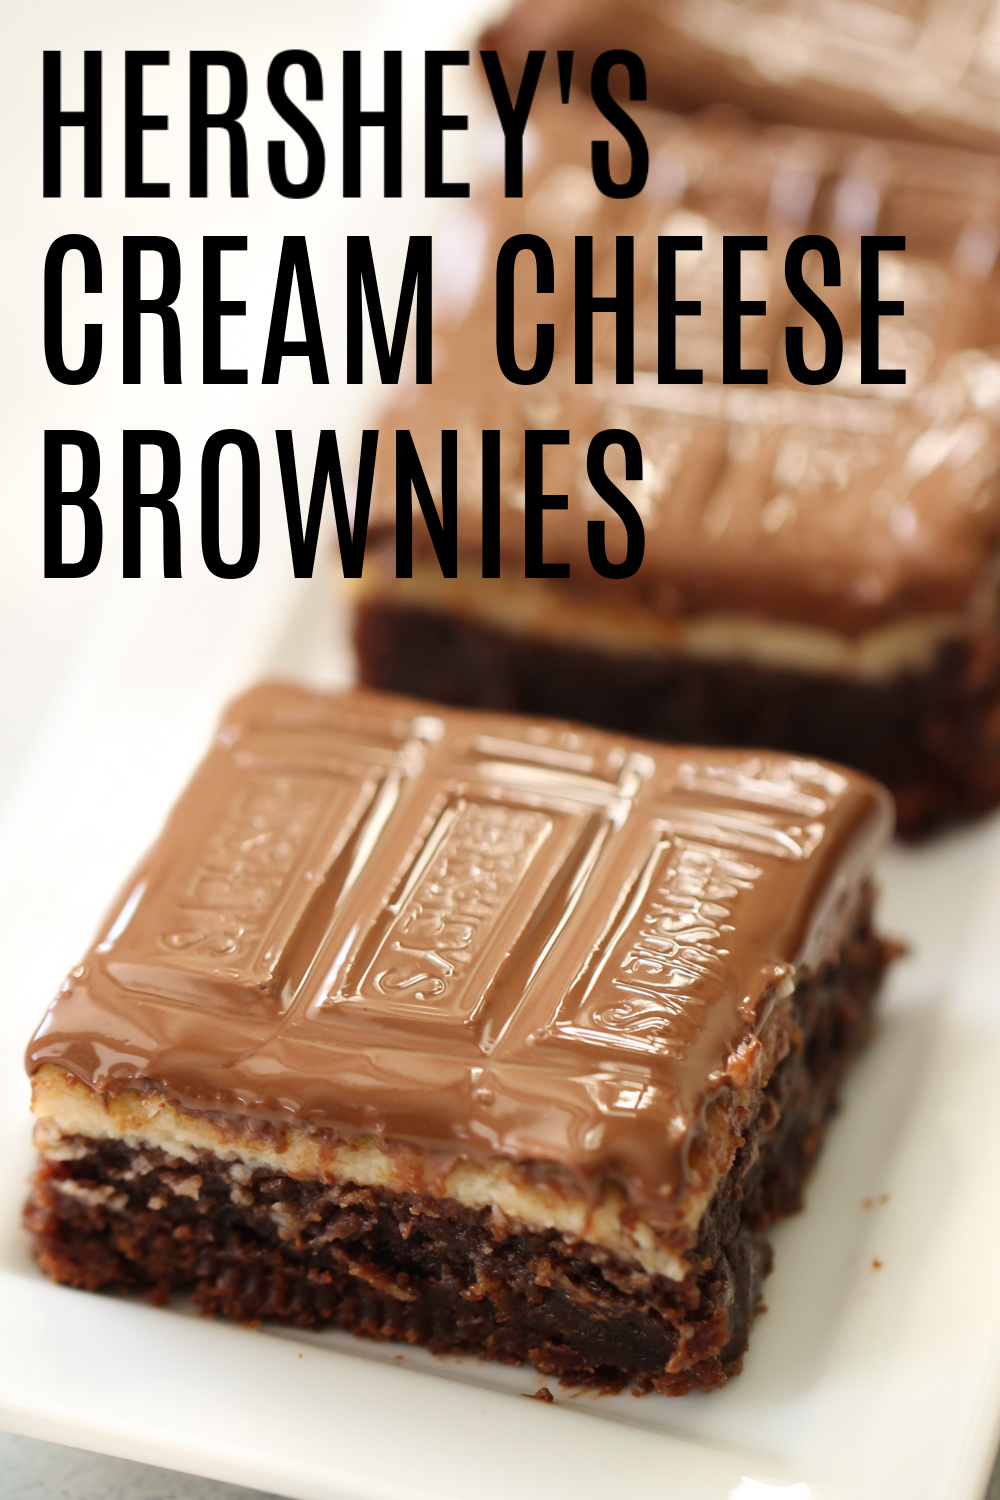 Hershey's Cream Cheese Brownie square on a white dish